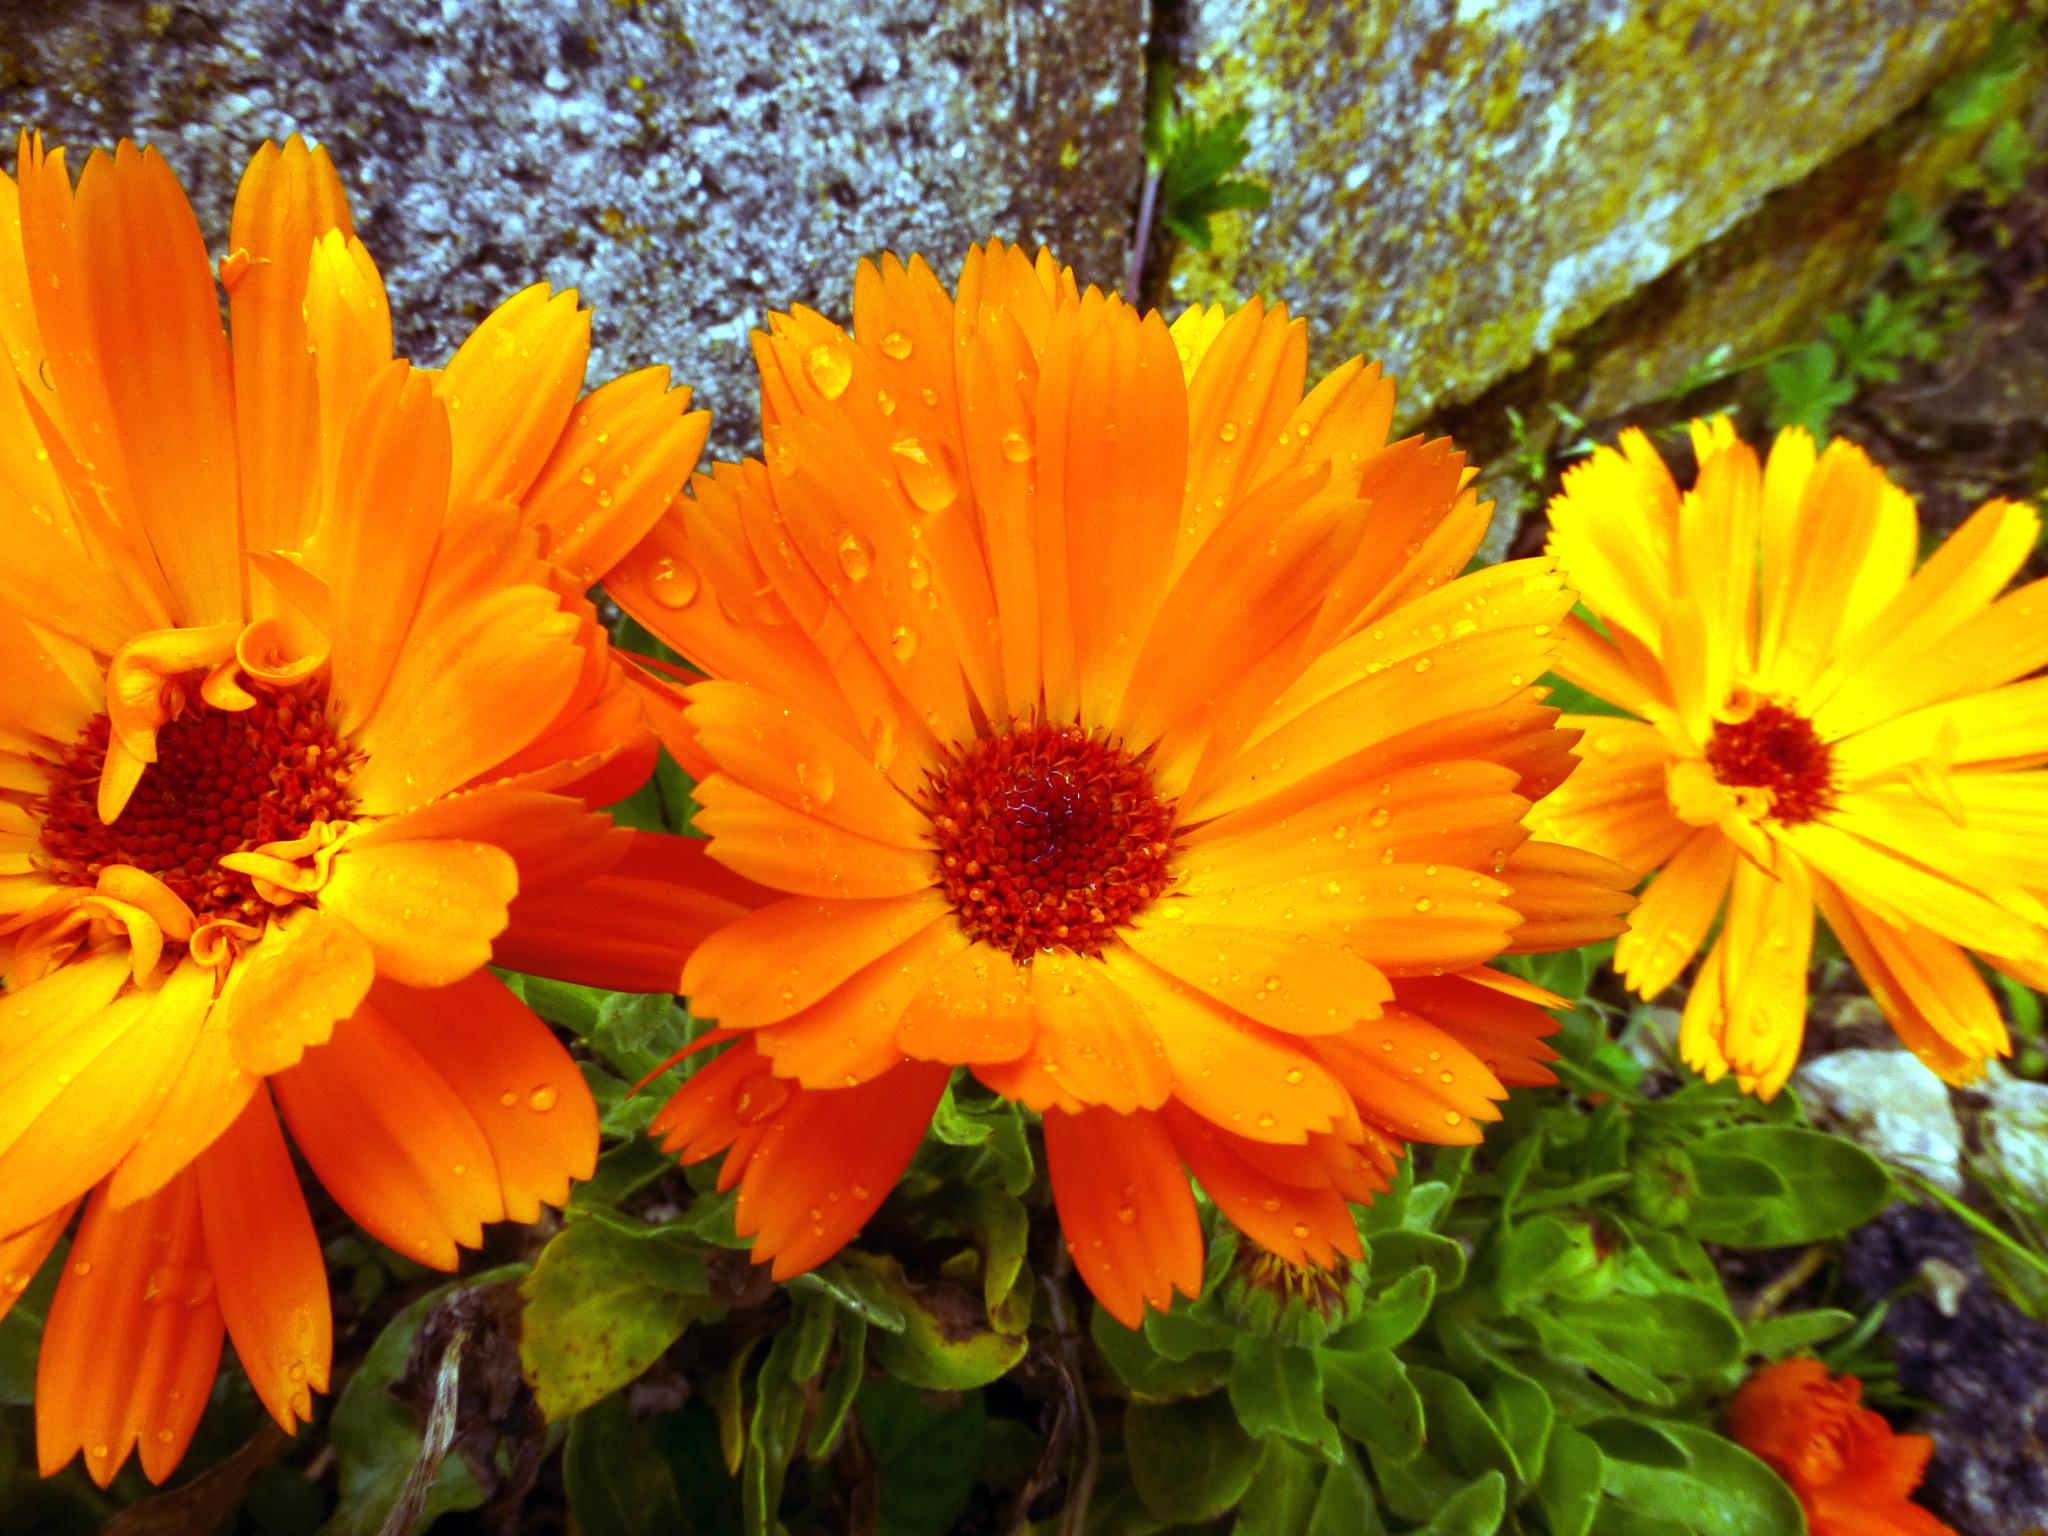 marigolds by peppe953